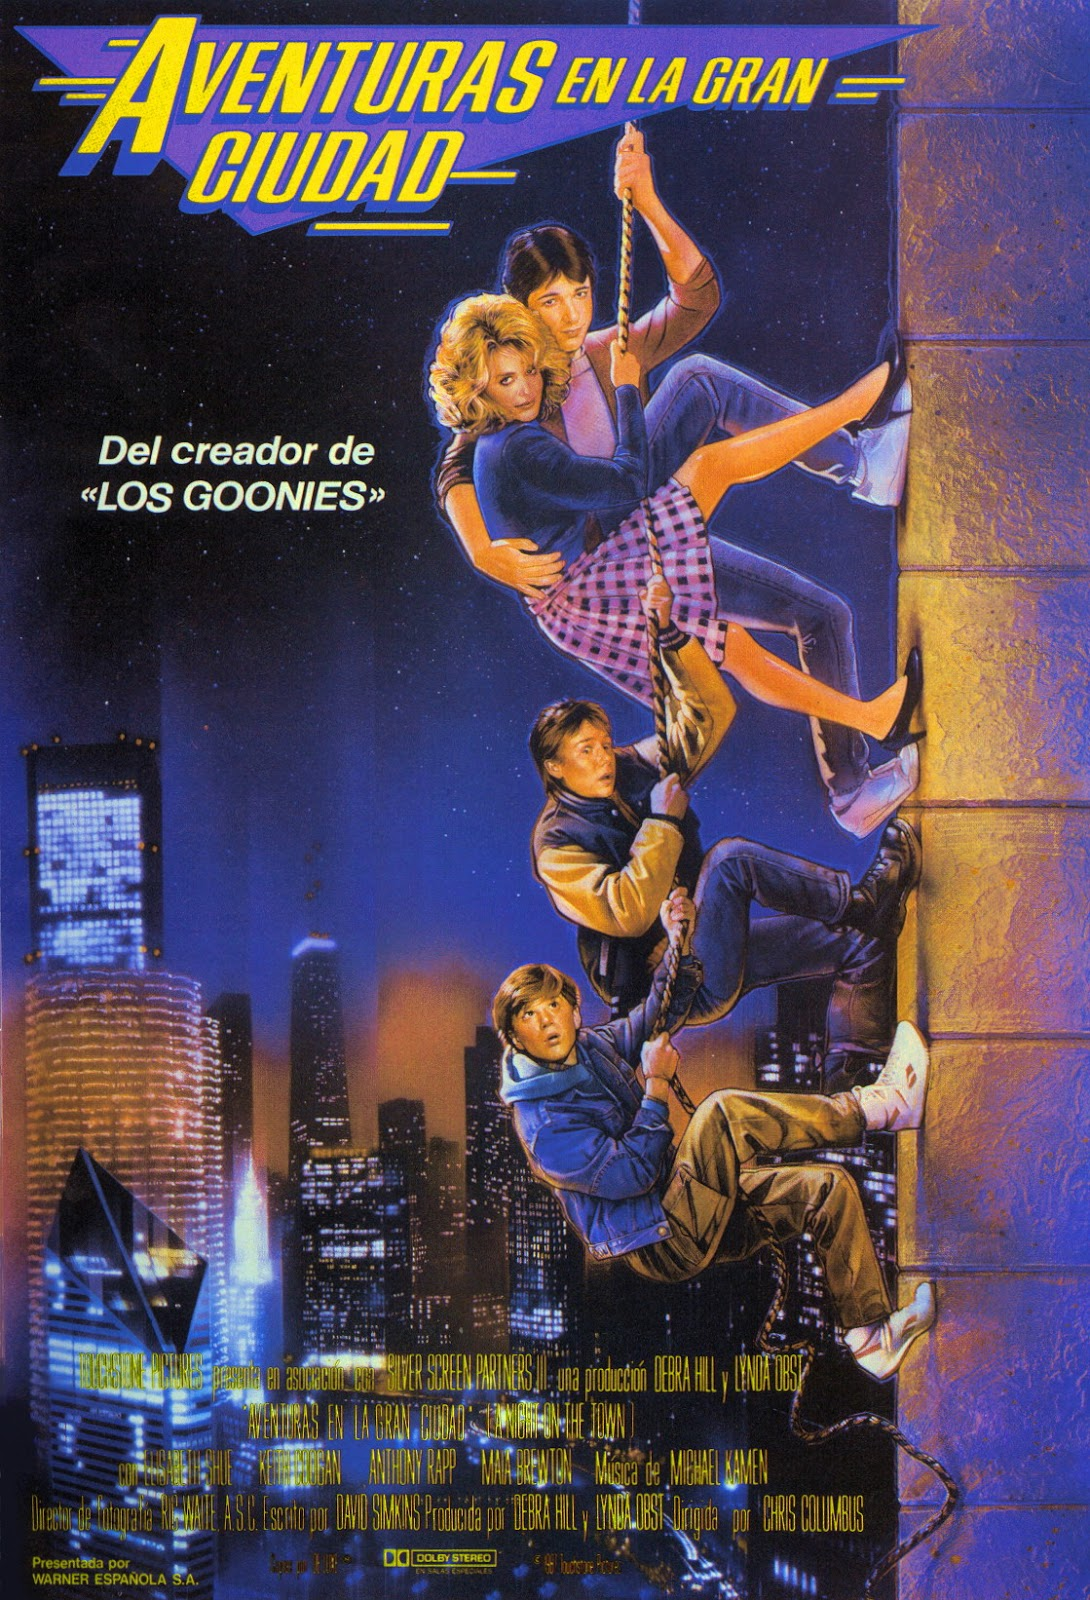 adventures in babysitting dir chris columbus 1987 discreet aventuras en la gran ciudad spanish poster via carteles peliculas click the poster for a larger image